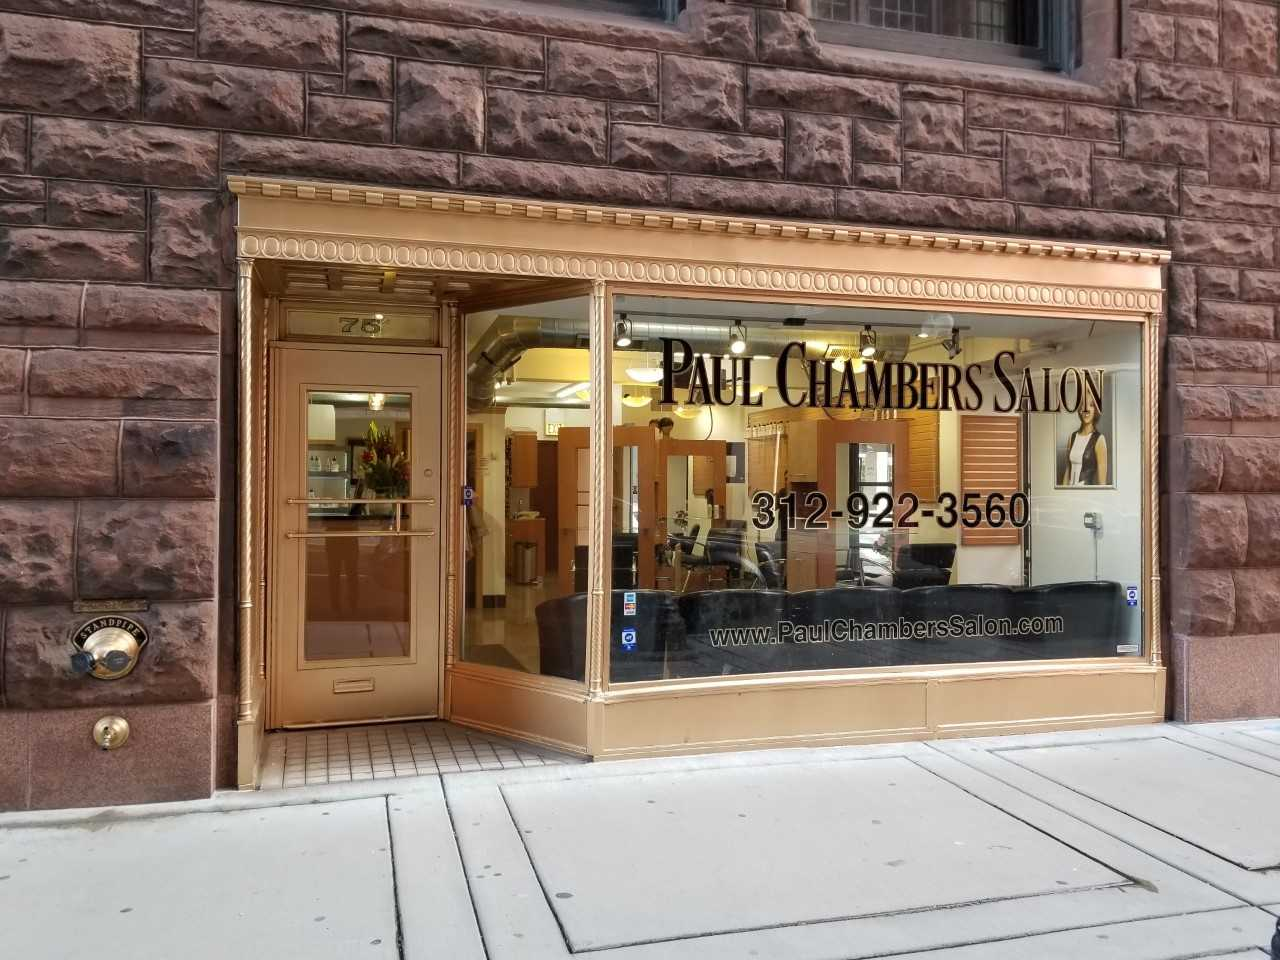 Outside of Paul Chambers Salon